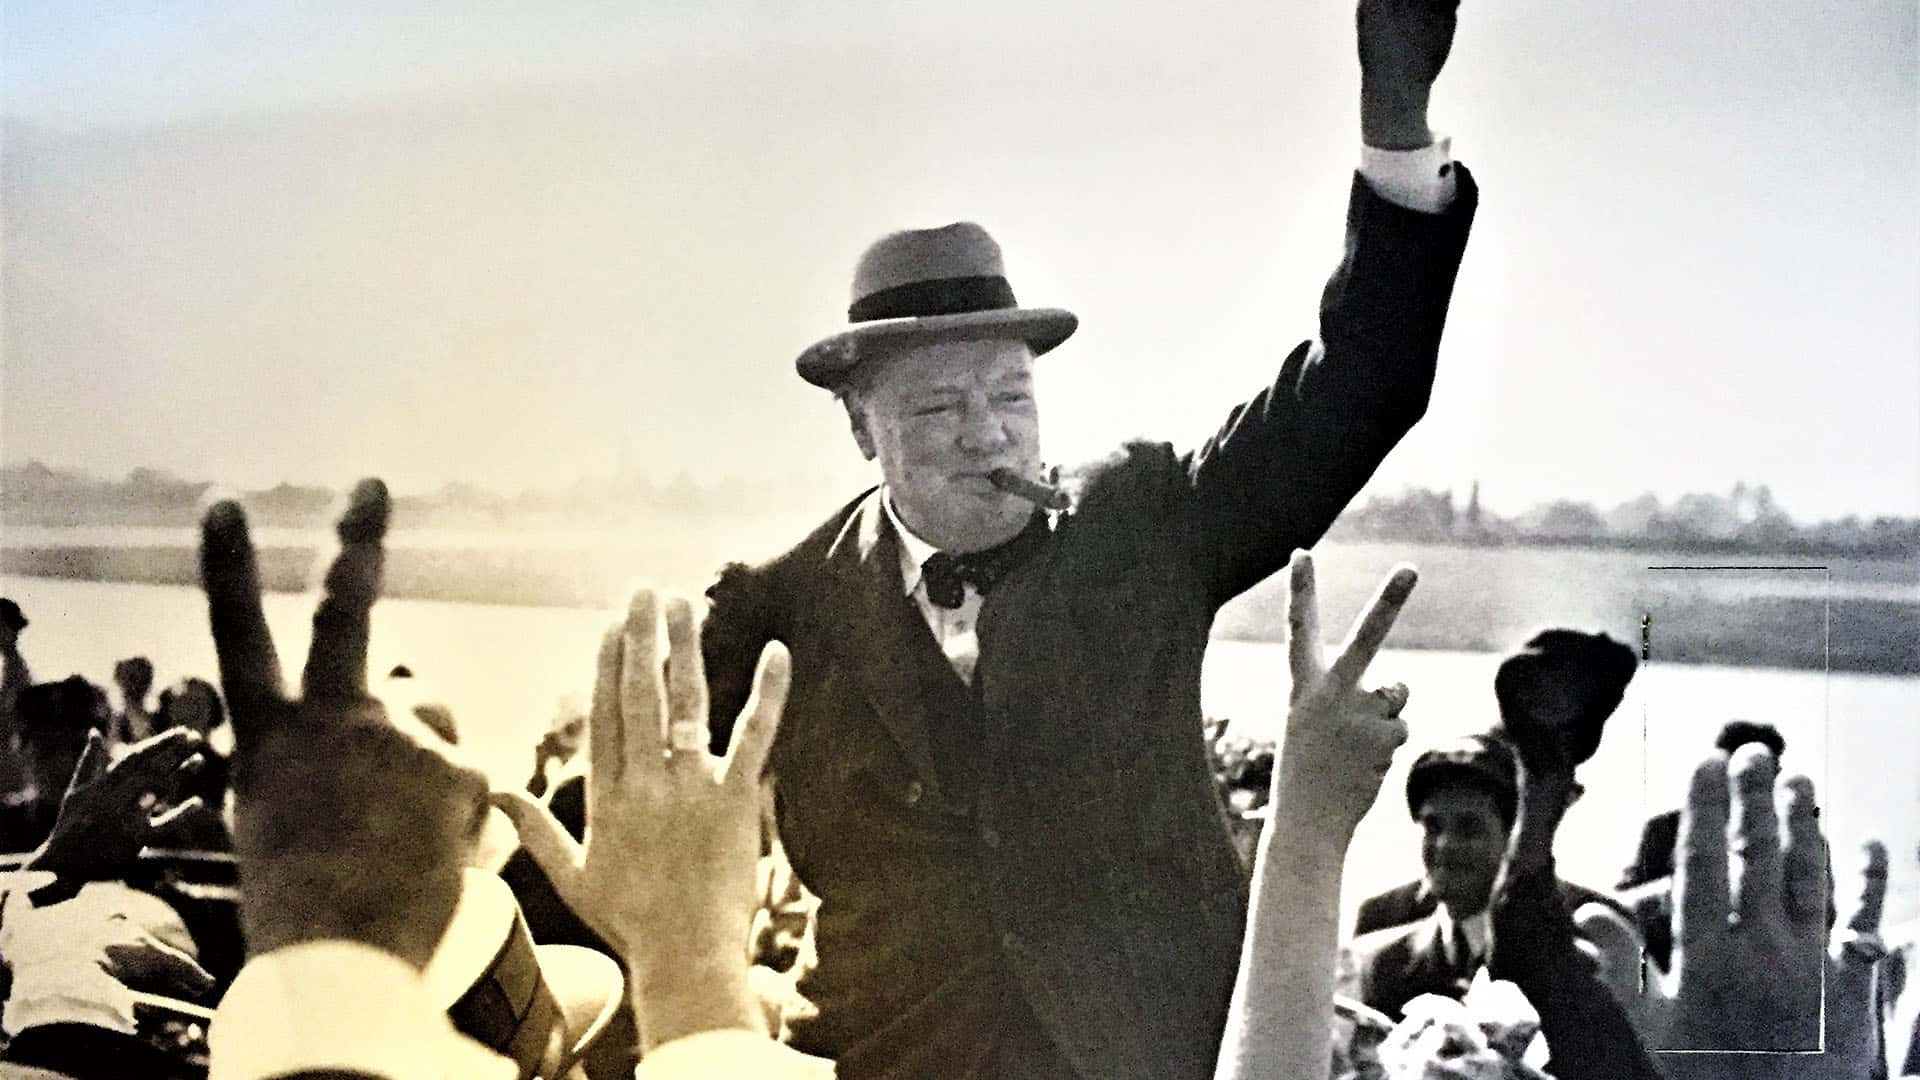 Churchill photograph at Chartwell House